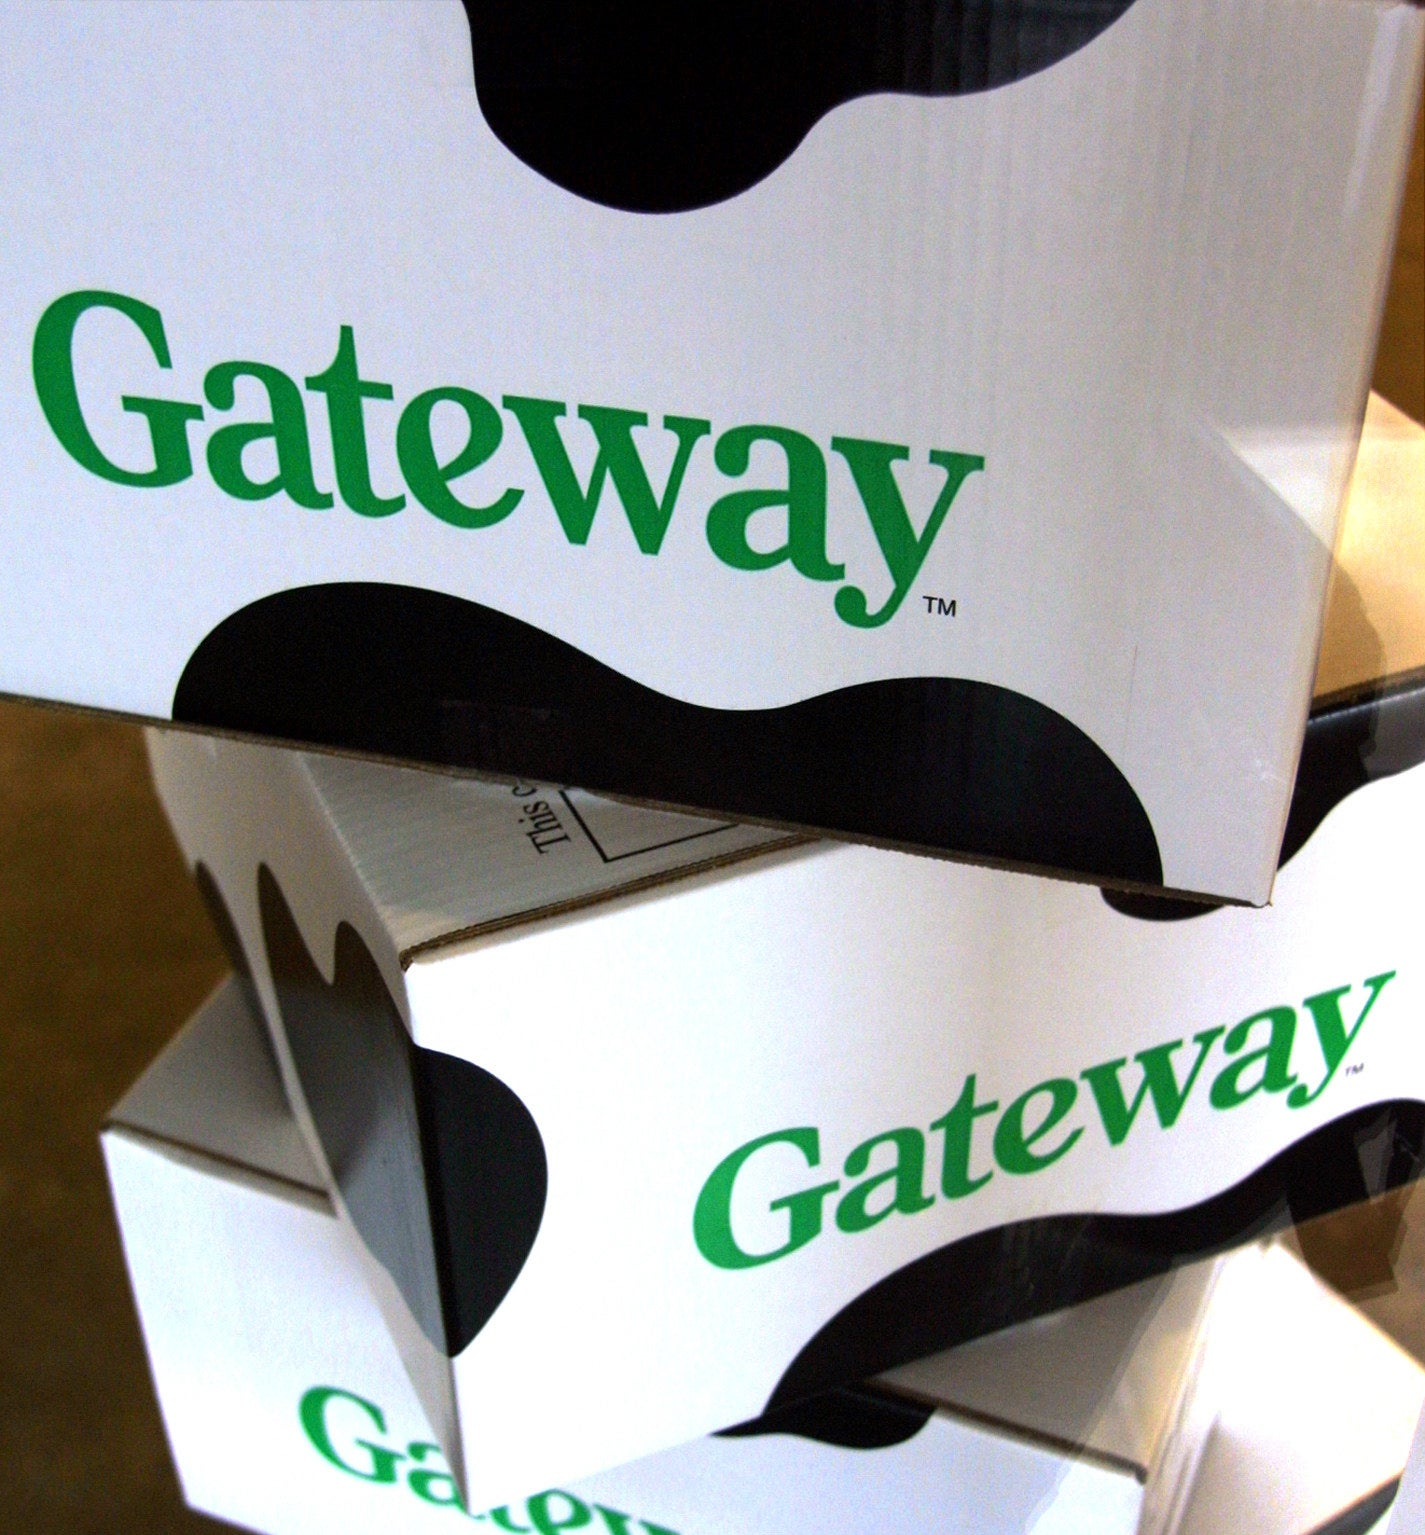 A stack of Gateway computer boxes with cow-print on them